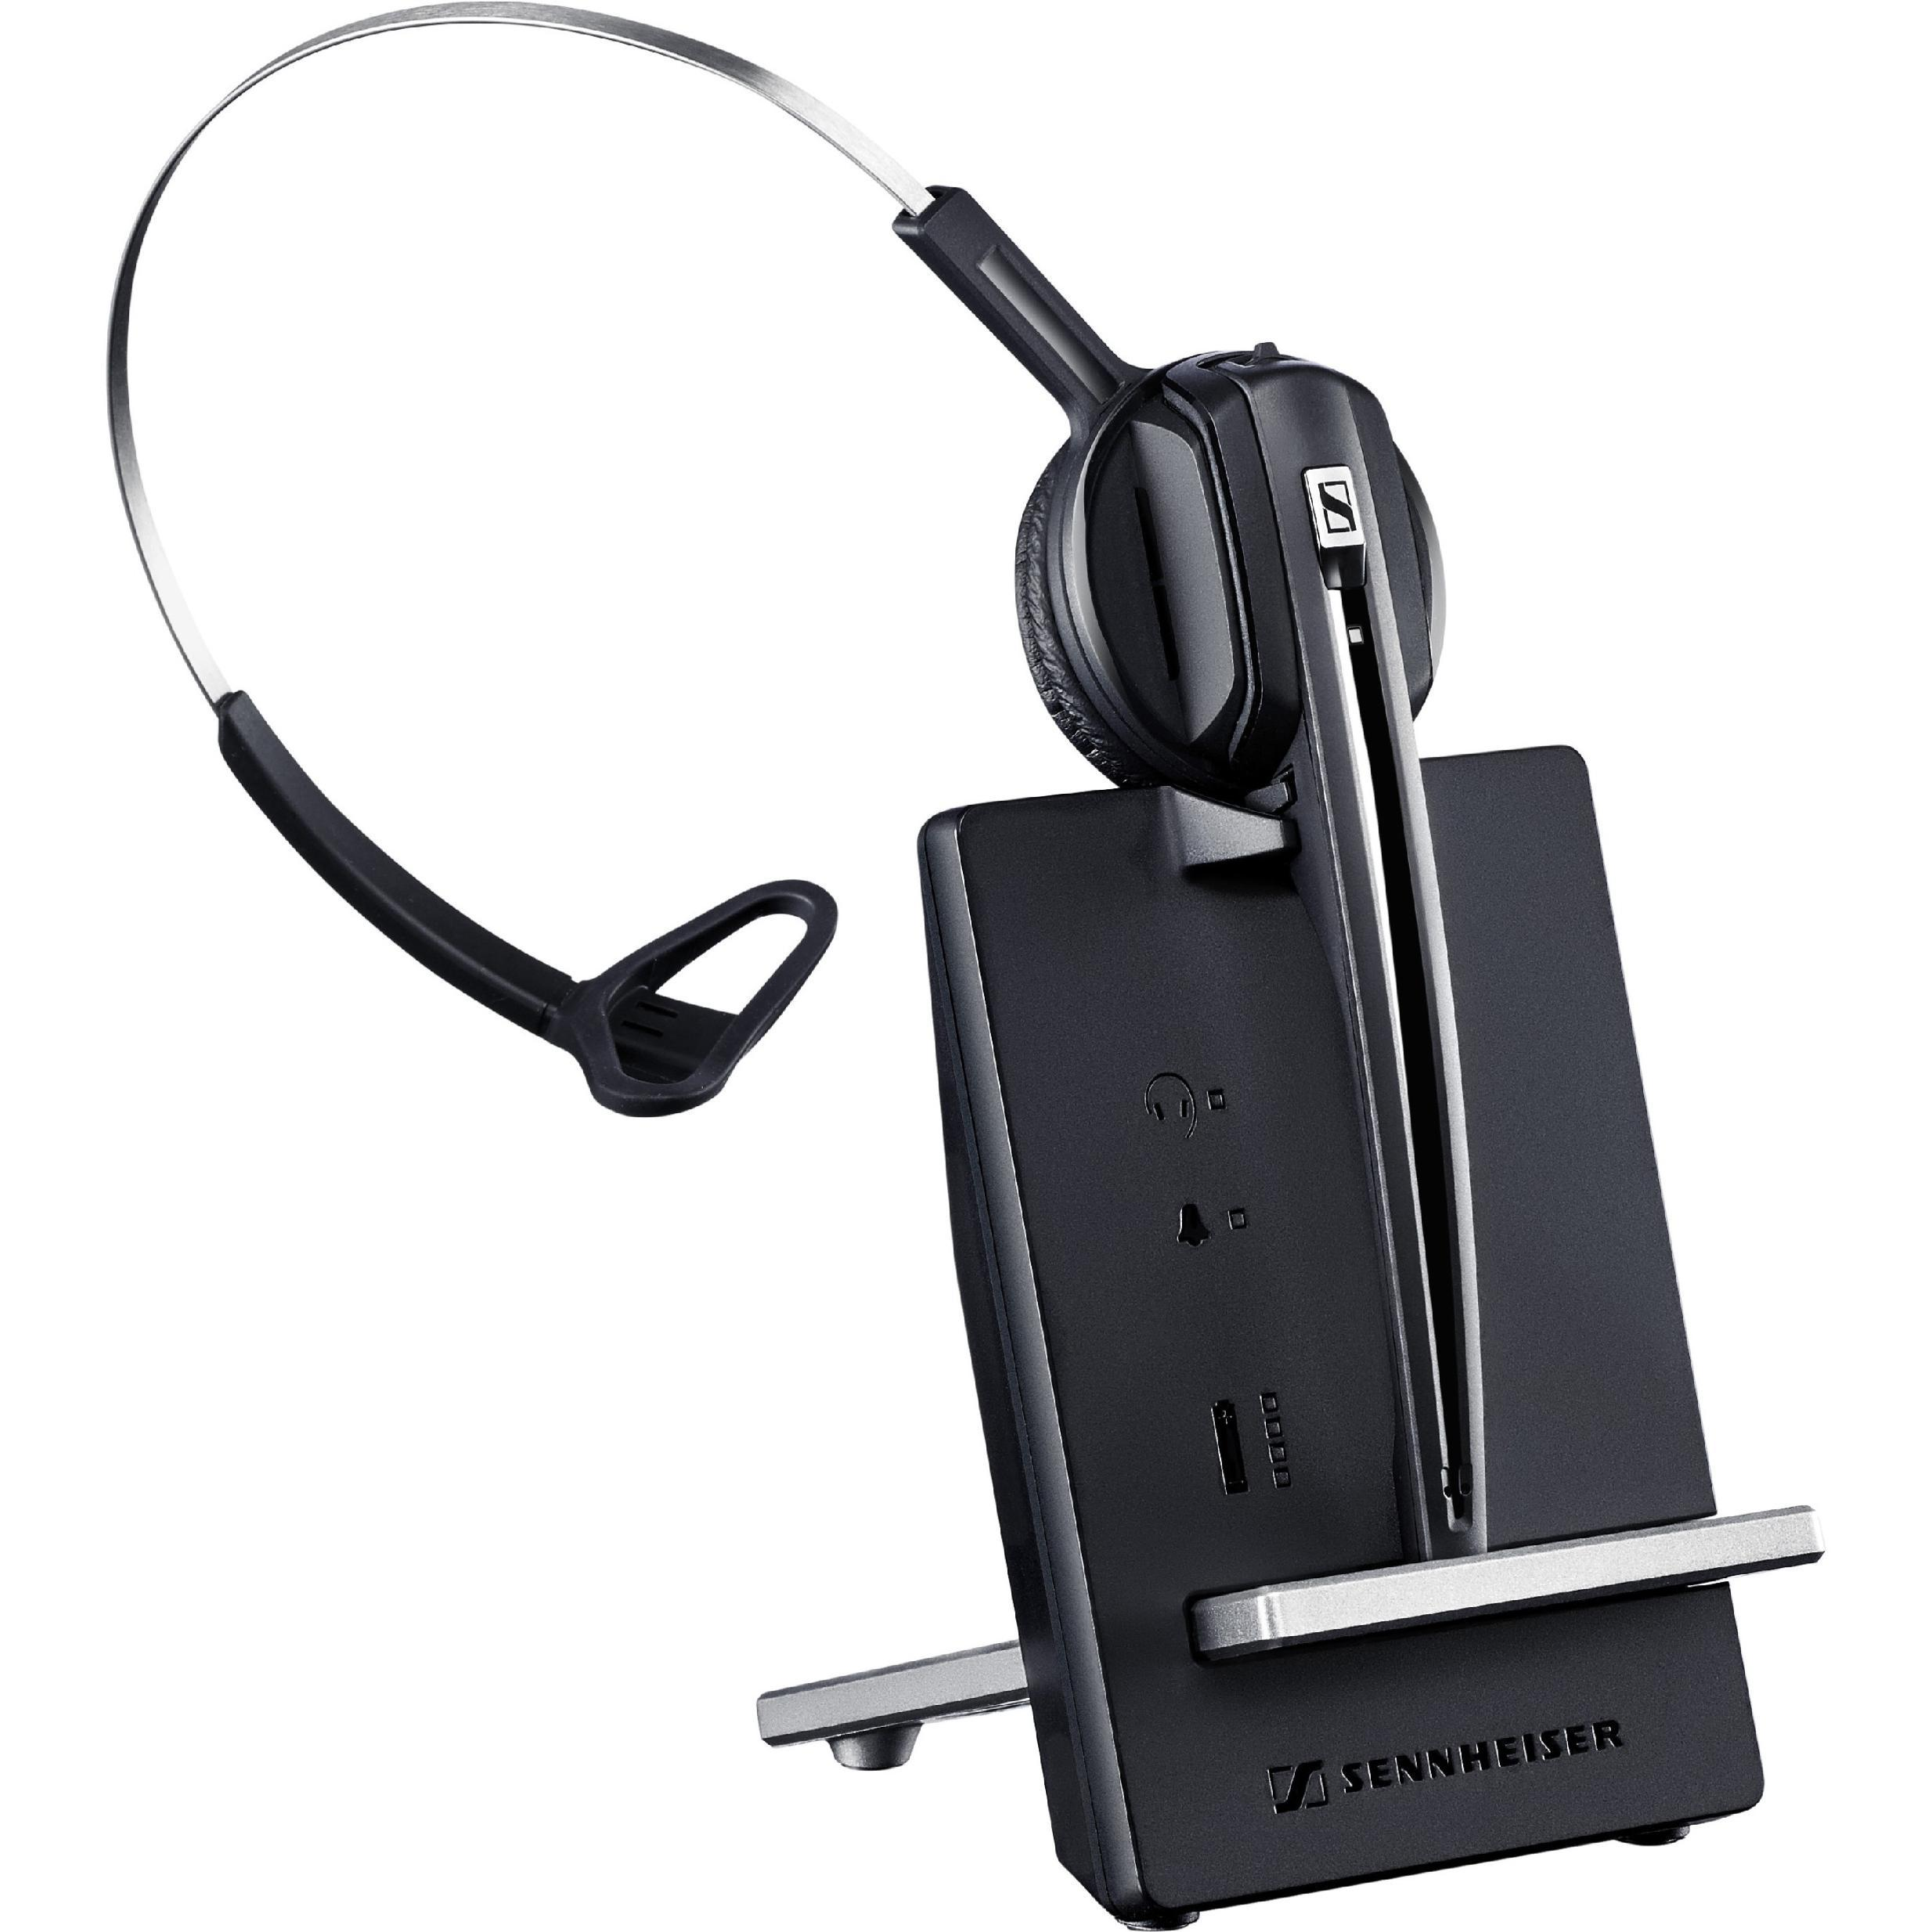 EPOS Sennheiser D 10 USB ML Wireless Headset New